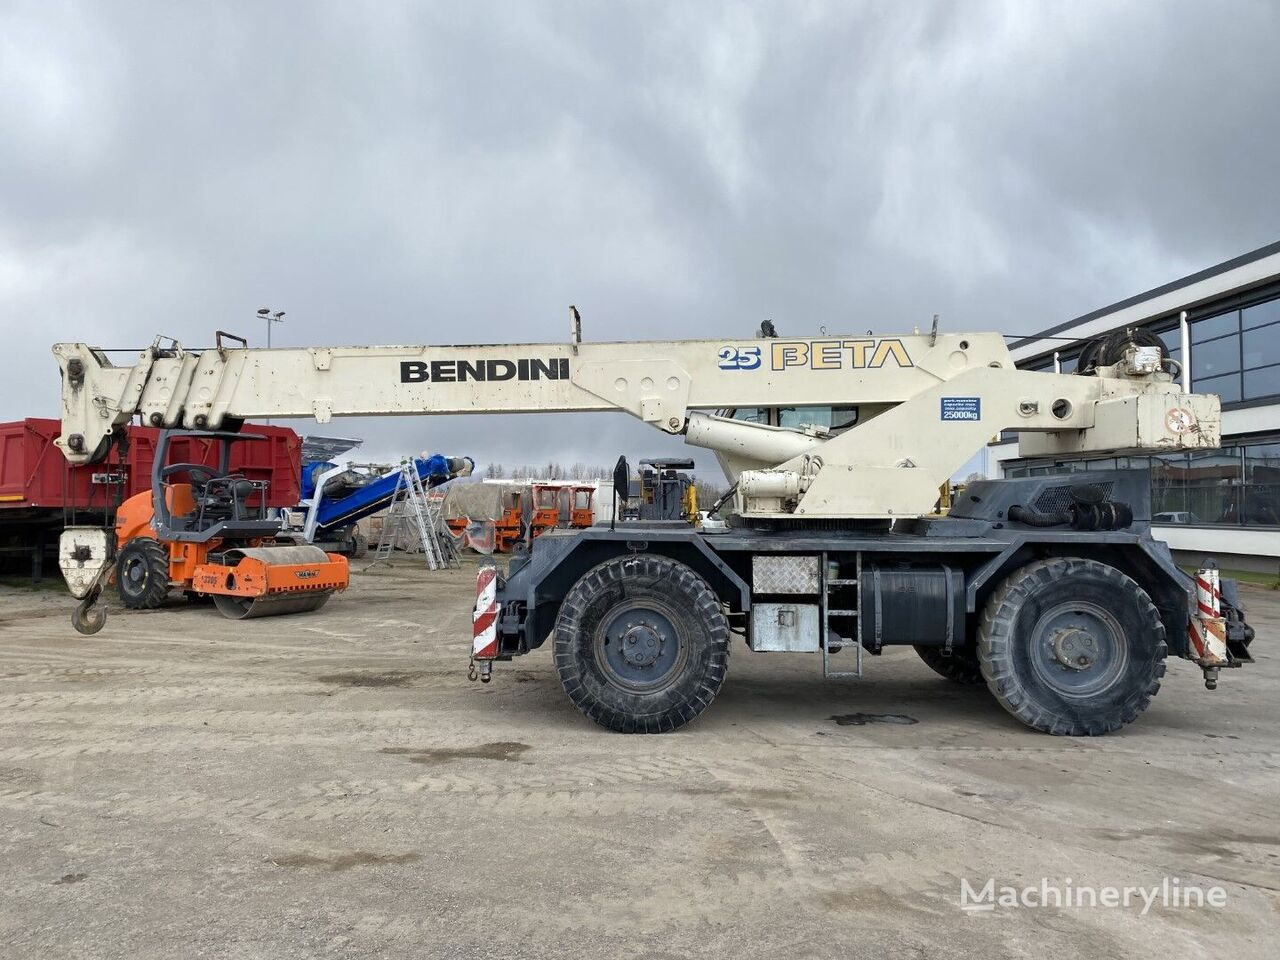 Bendini Beta 25 mobile crane